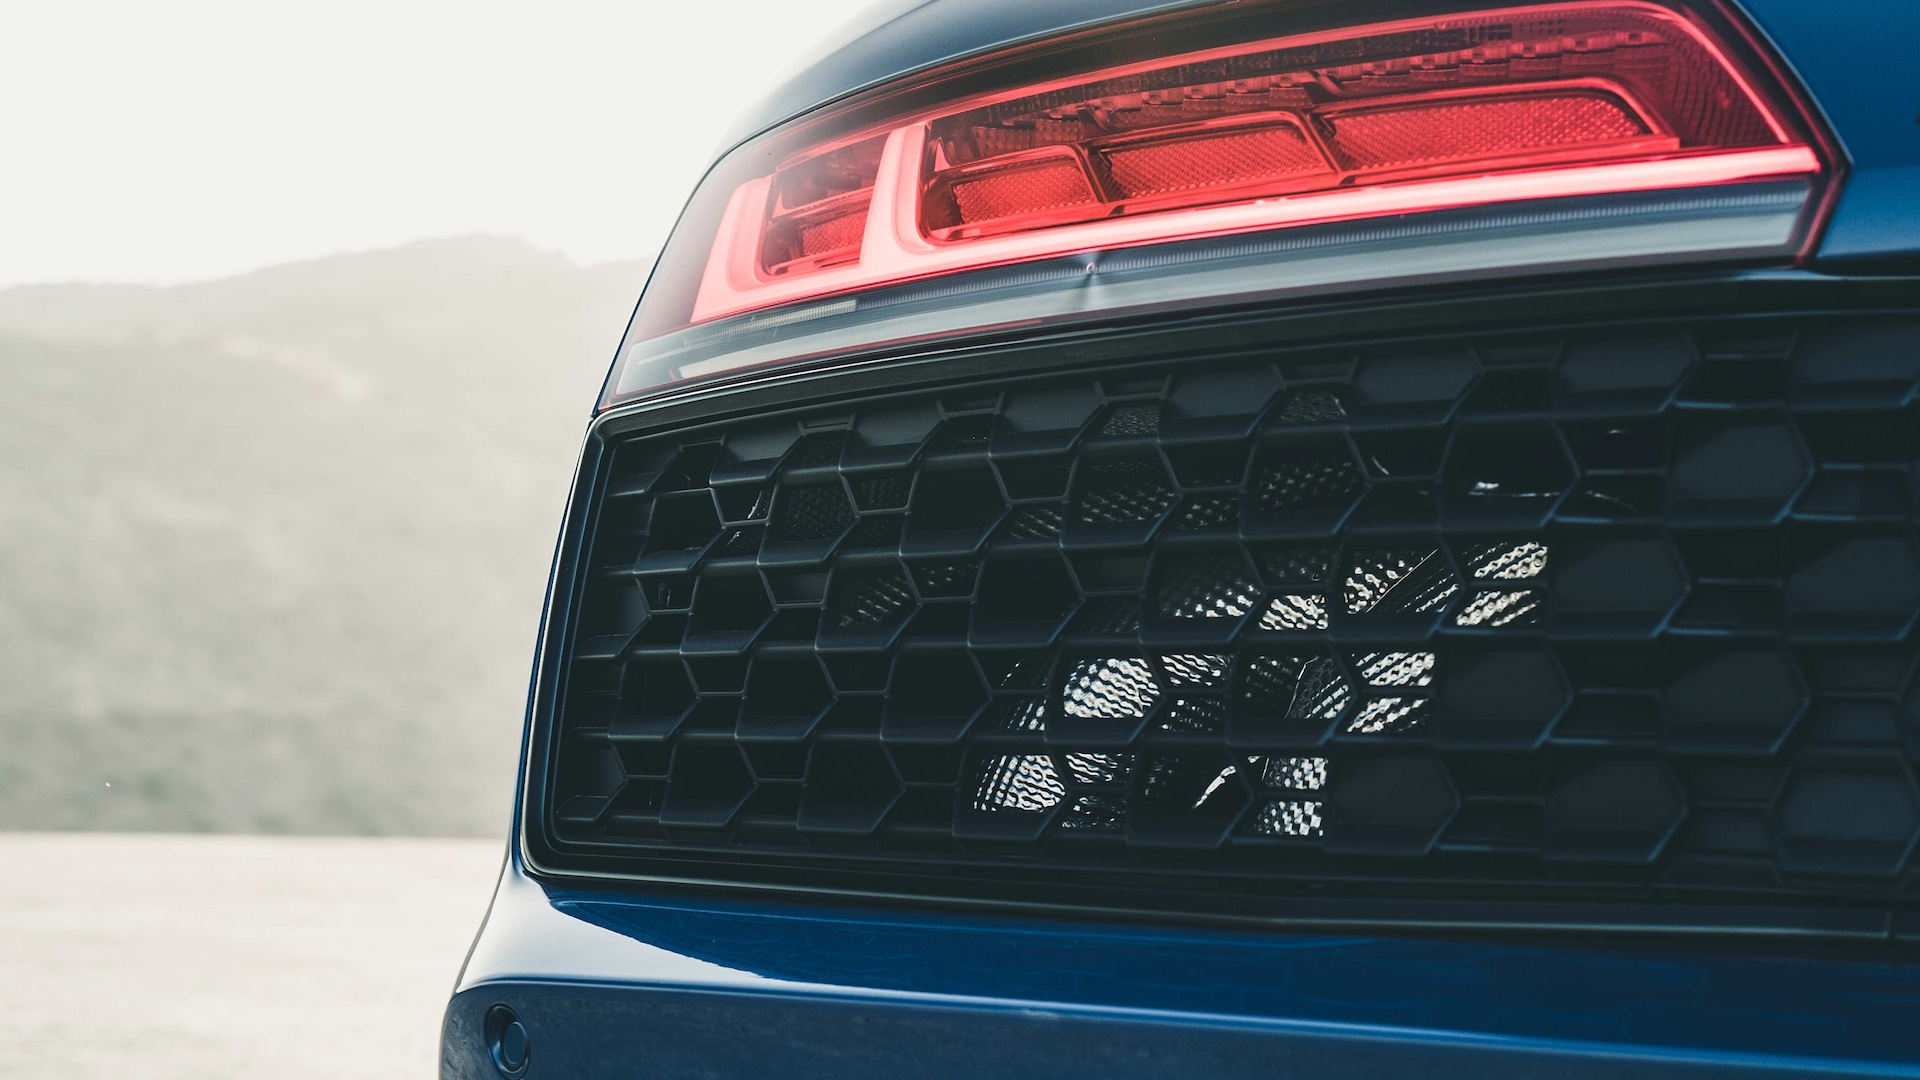 The grille rounds off the diffuser that extends quite some way up. In the engine compartment the air filter is situated under a new, three-part cover – available in a choice of plastic or carbon fiber.